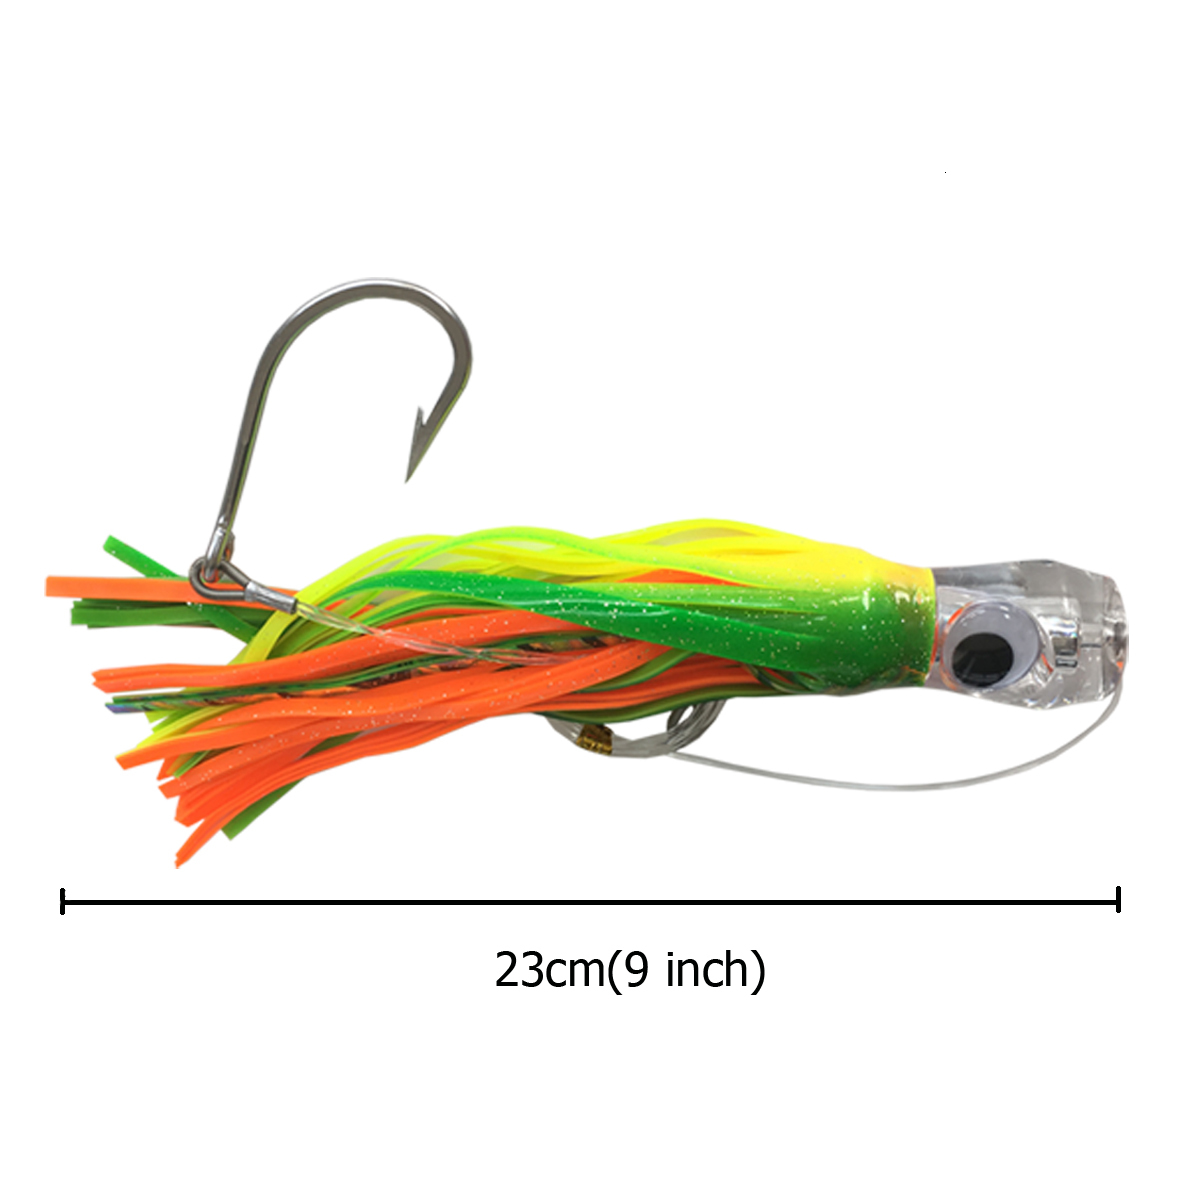 Octopus Skirts Trolling Lures Saltwater Tuna Marlin Wahoo Trolling Skirt Lures with Stainess Steel Hook and Swivel Rigged Leader Hook and Ba